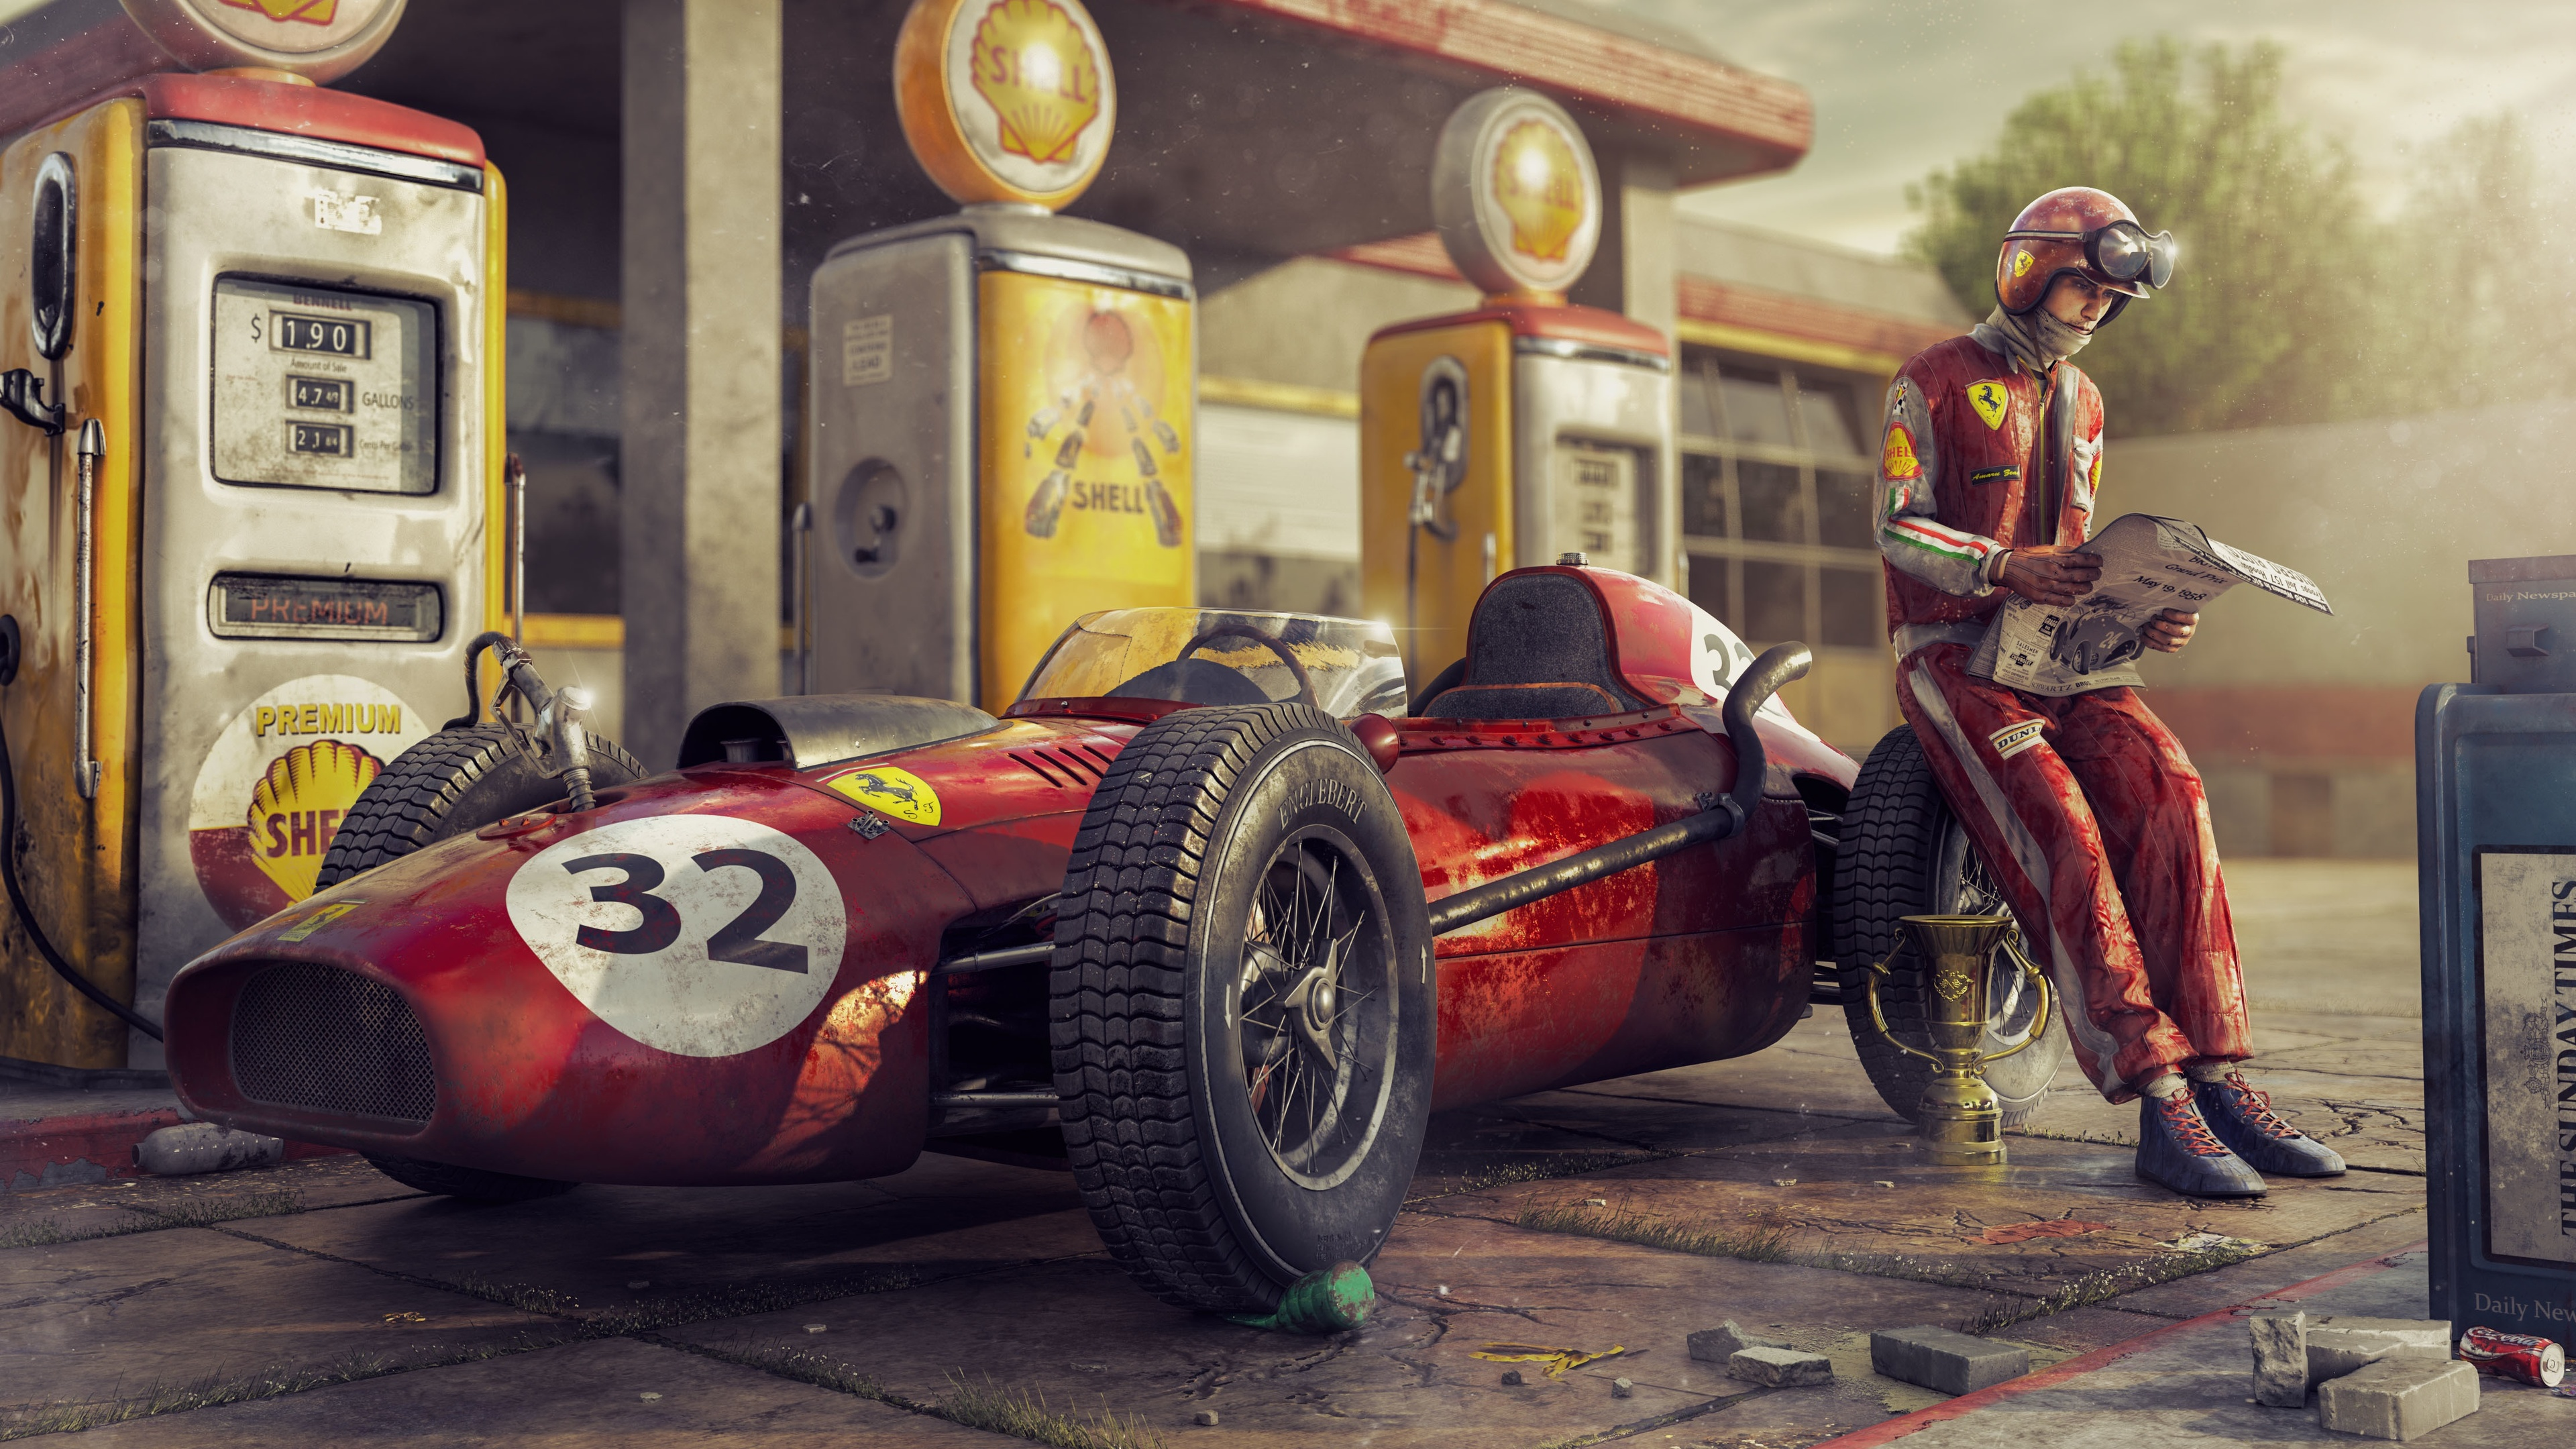 going home 1546362163 - Going Home - hd-wallpapers, cars wallpapers, artwork wallpapers, artstation wallpapers, artist wallpapers, 4k-wallpapers